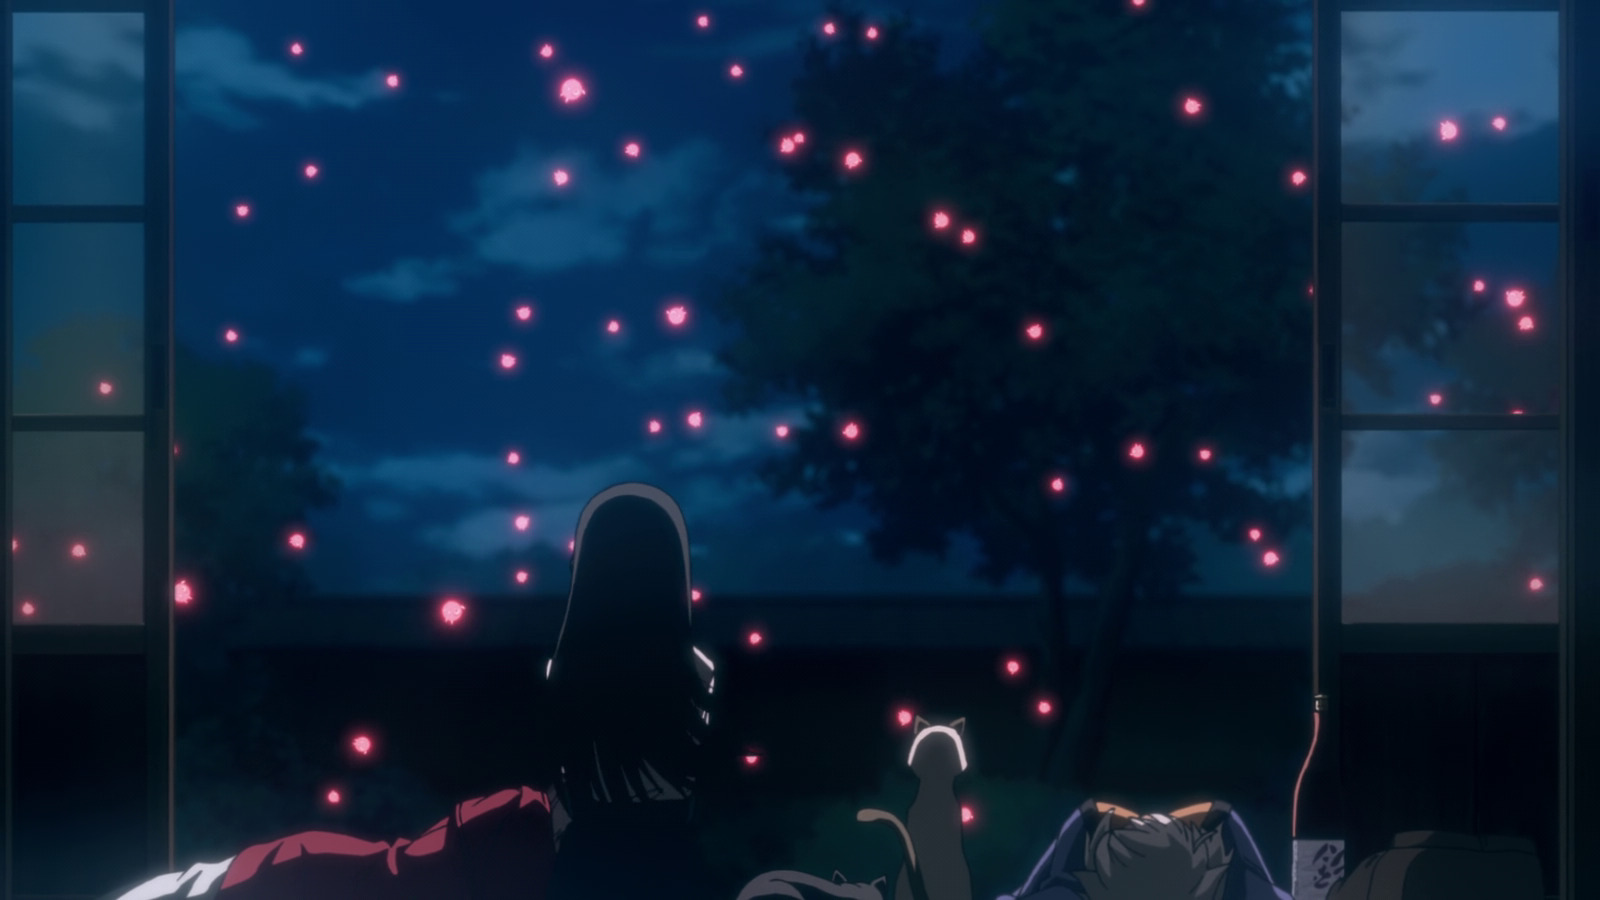 Makoto watches not-fireflies